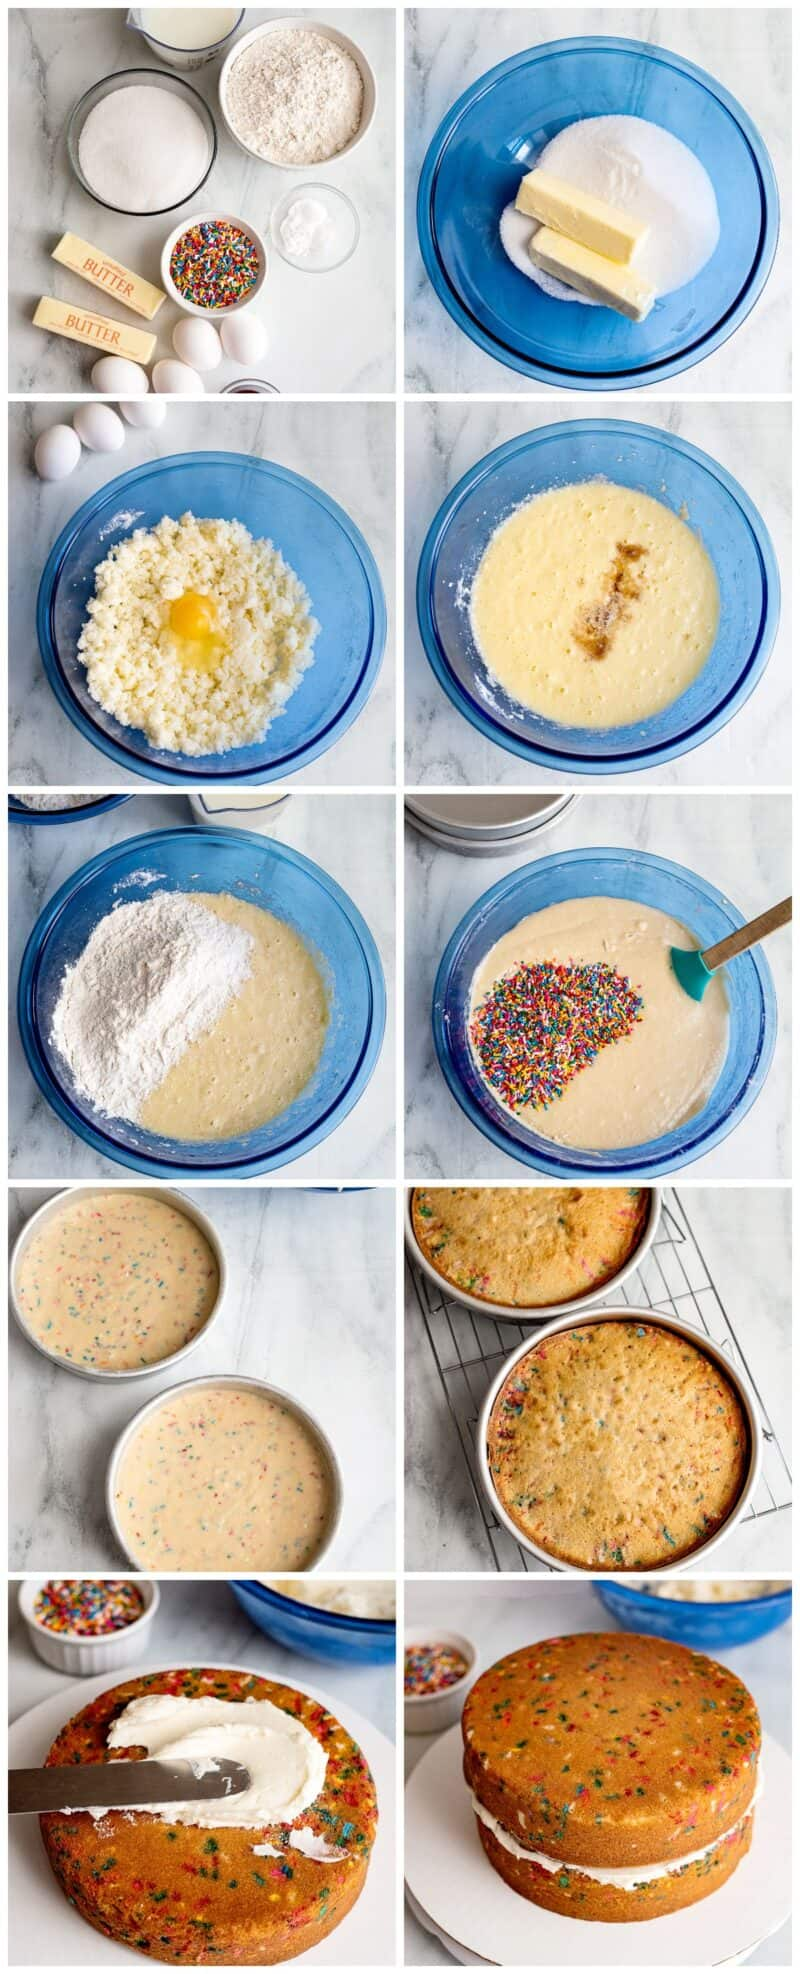 step by step photos for how to make funfetti cake